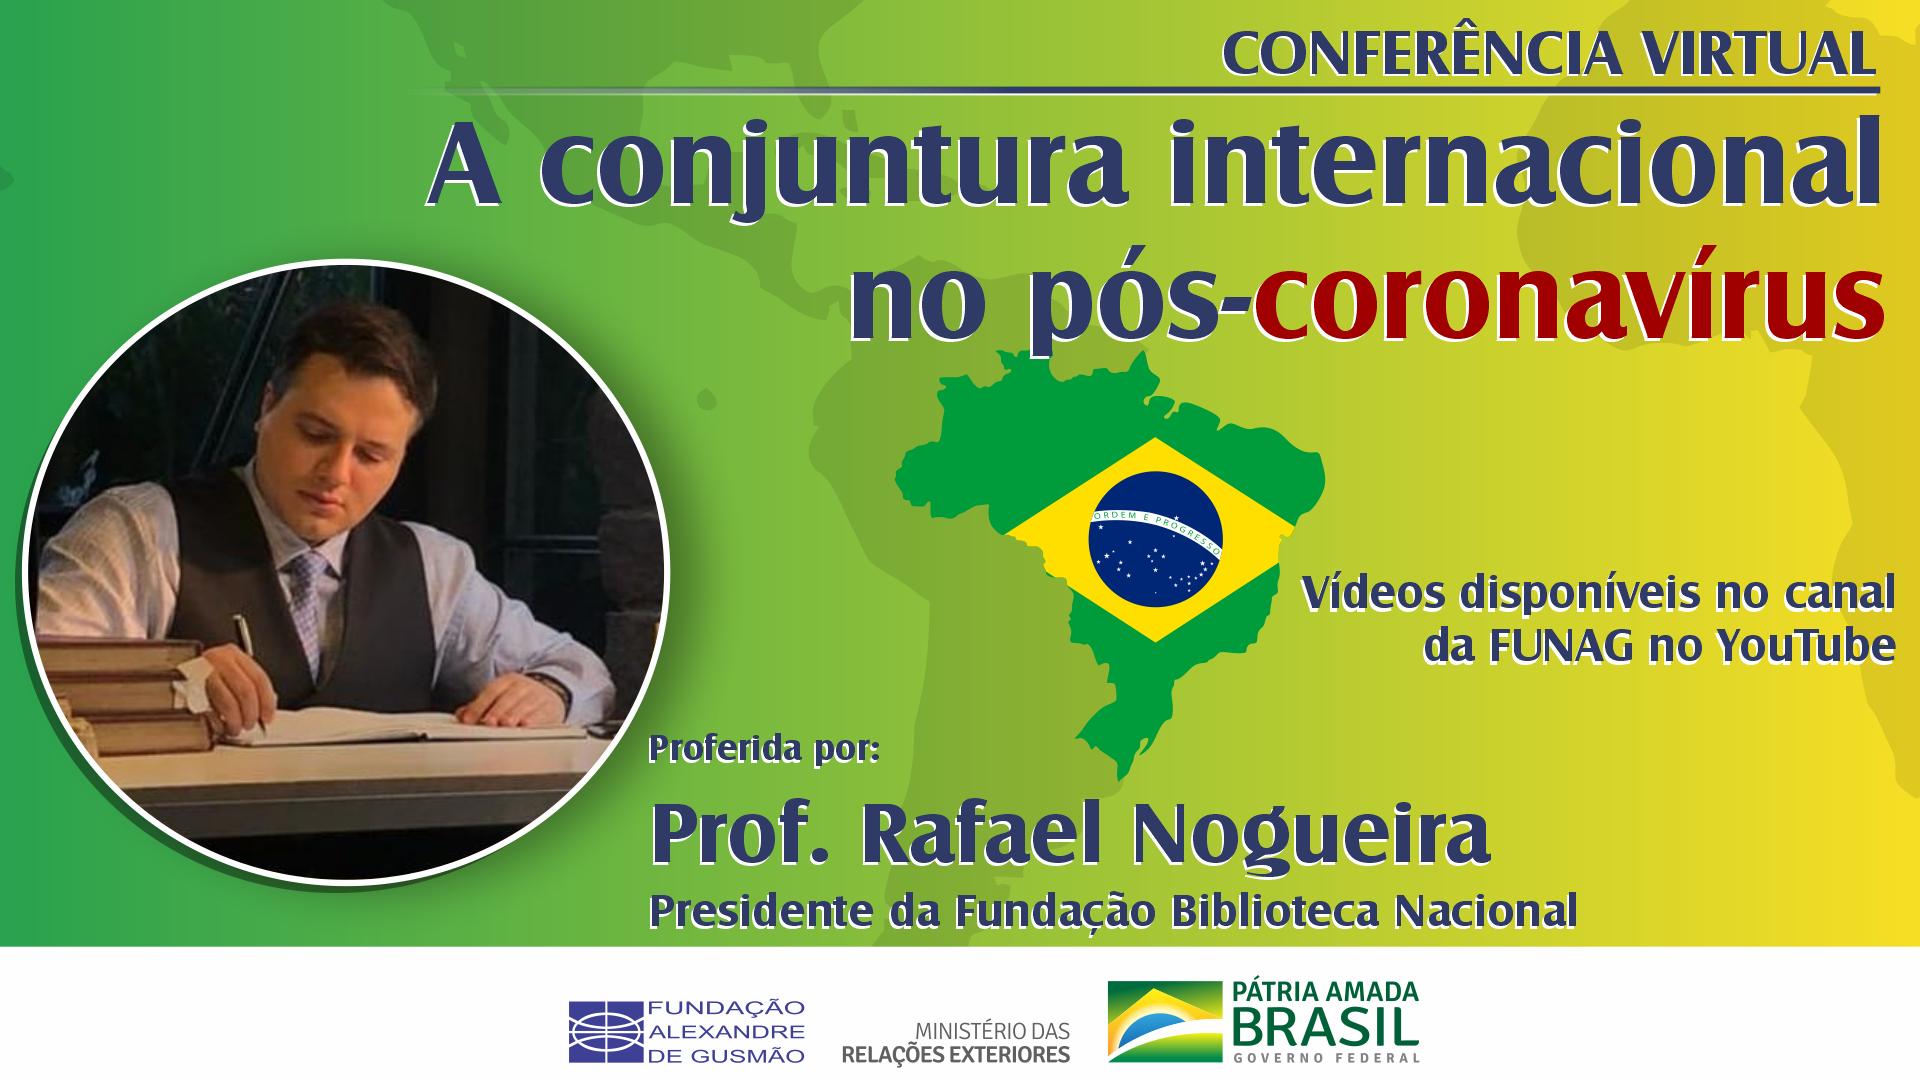 Watch the conference with Professor Rafael Nogueira, President of the Brazilian National Library